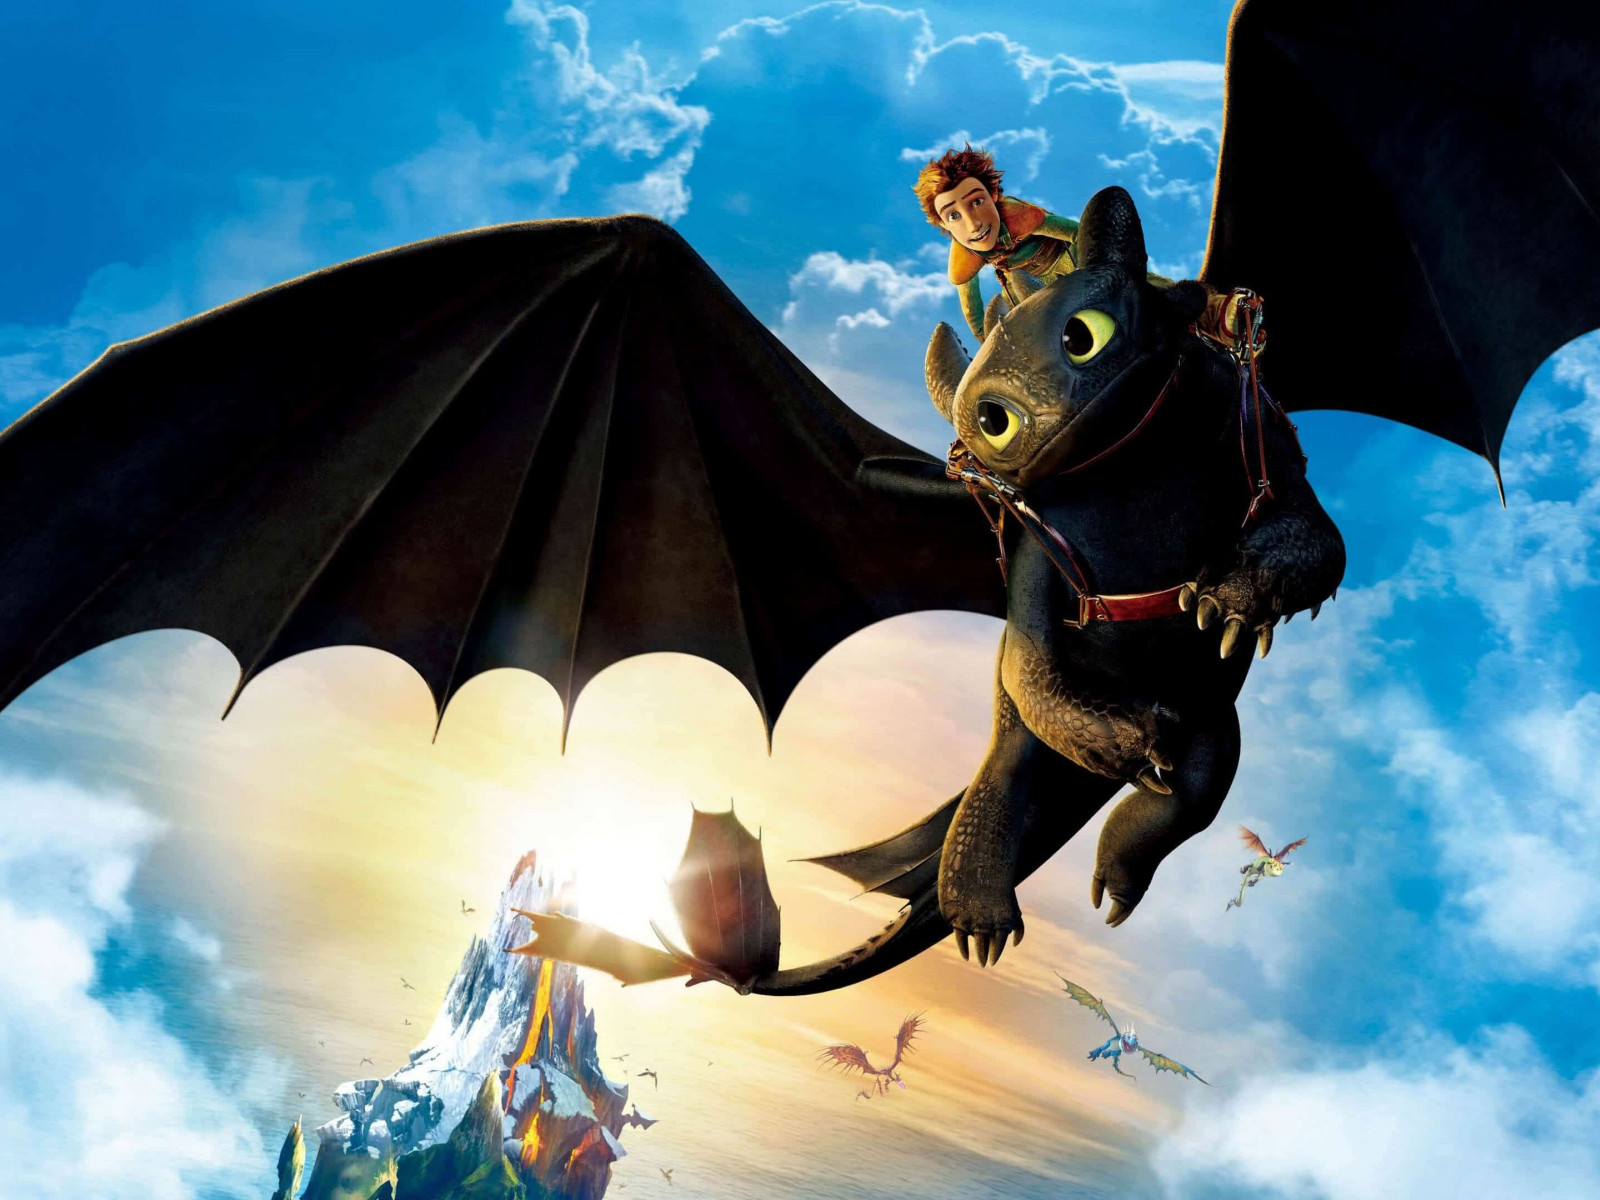 How to Train Your Dragon: The Hidden World wallpaper 1600x1200